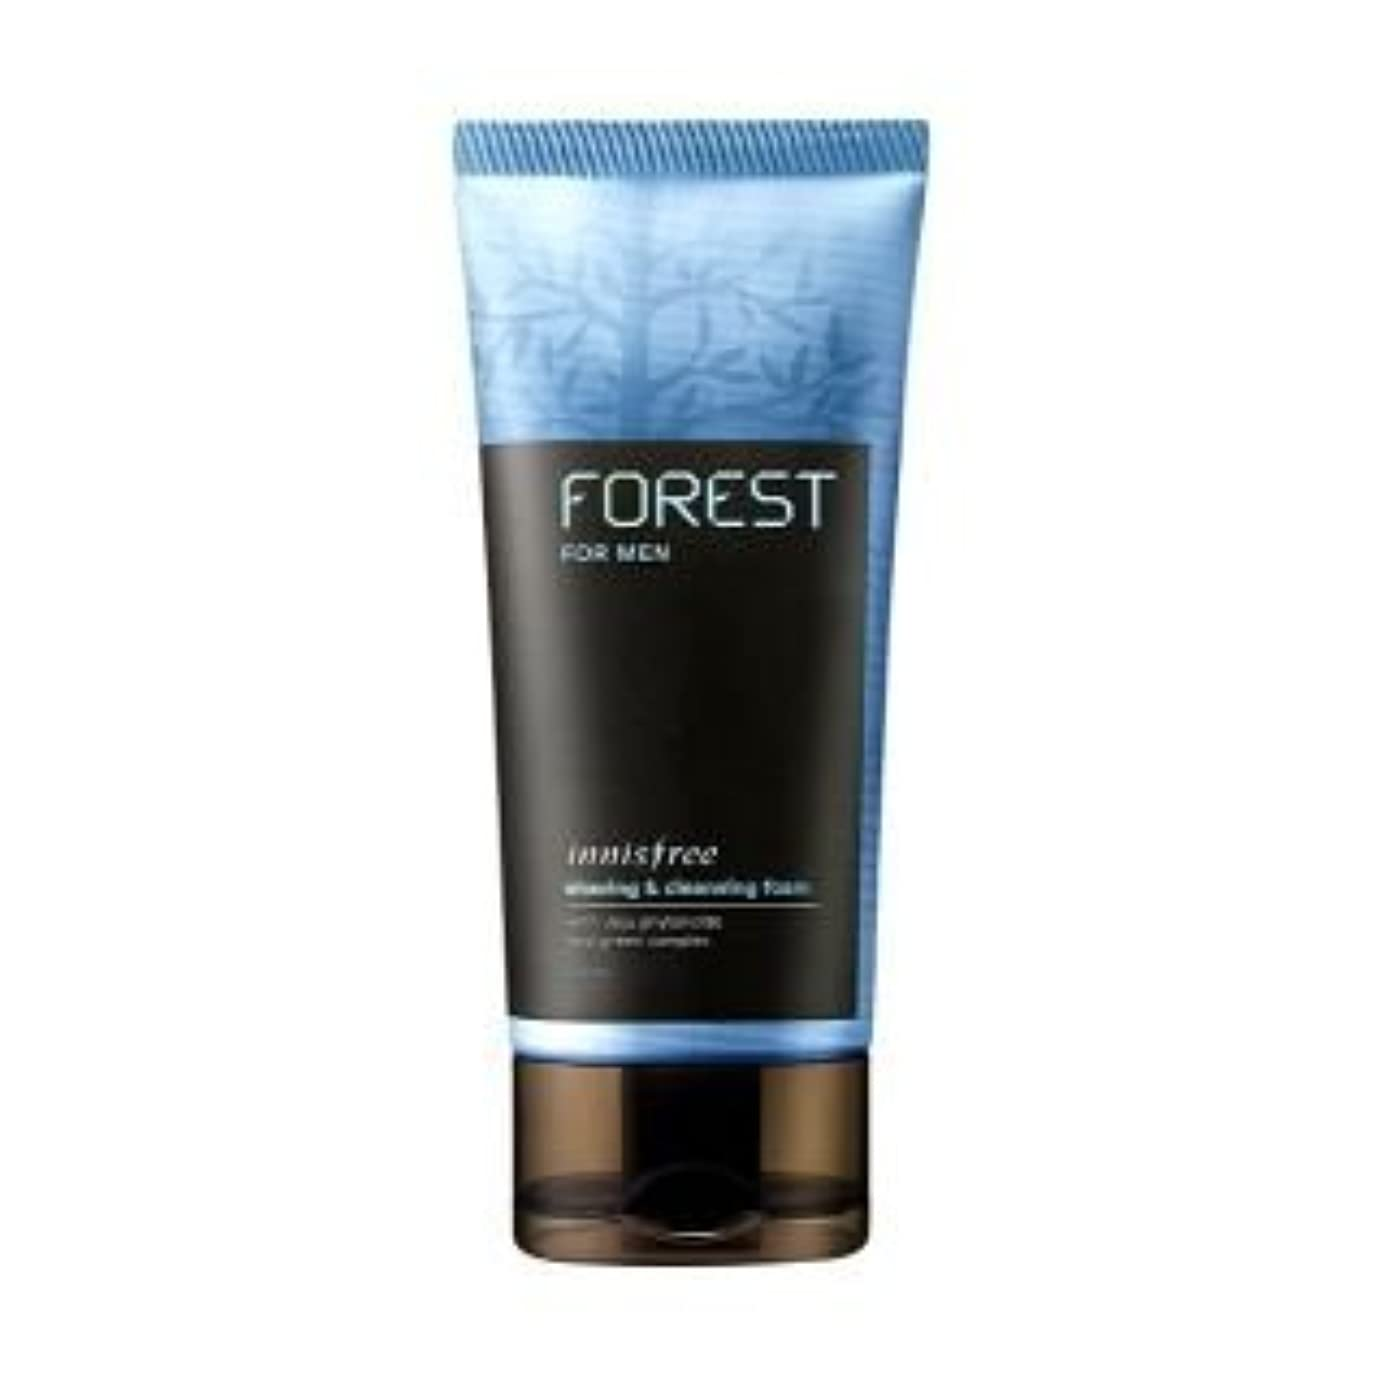 ファイナンスファン暖かさ[Innisfree] Forest For Men Shaving & Cleansing Foam 150ml by Innisfree [並行輸入品]